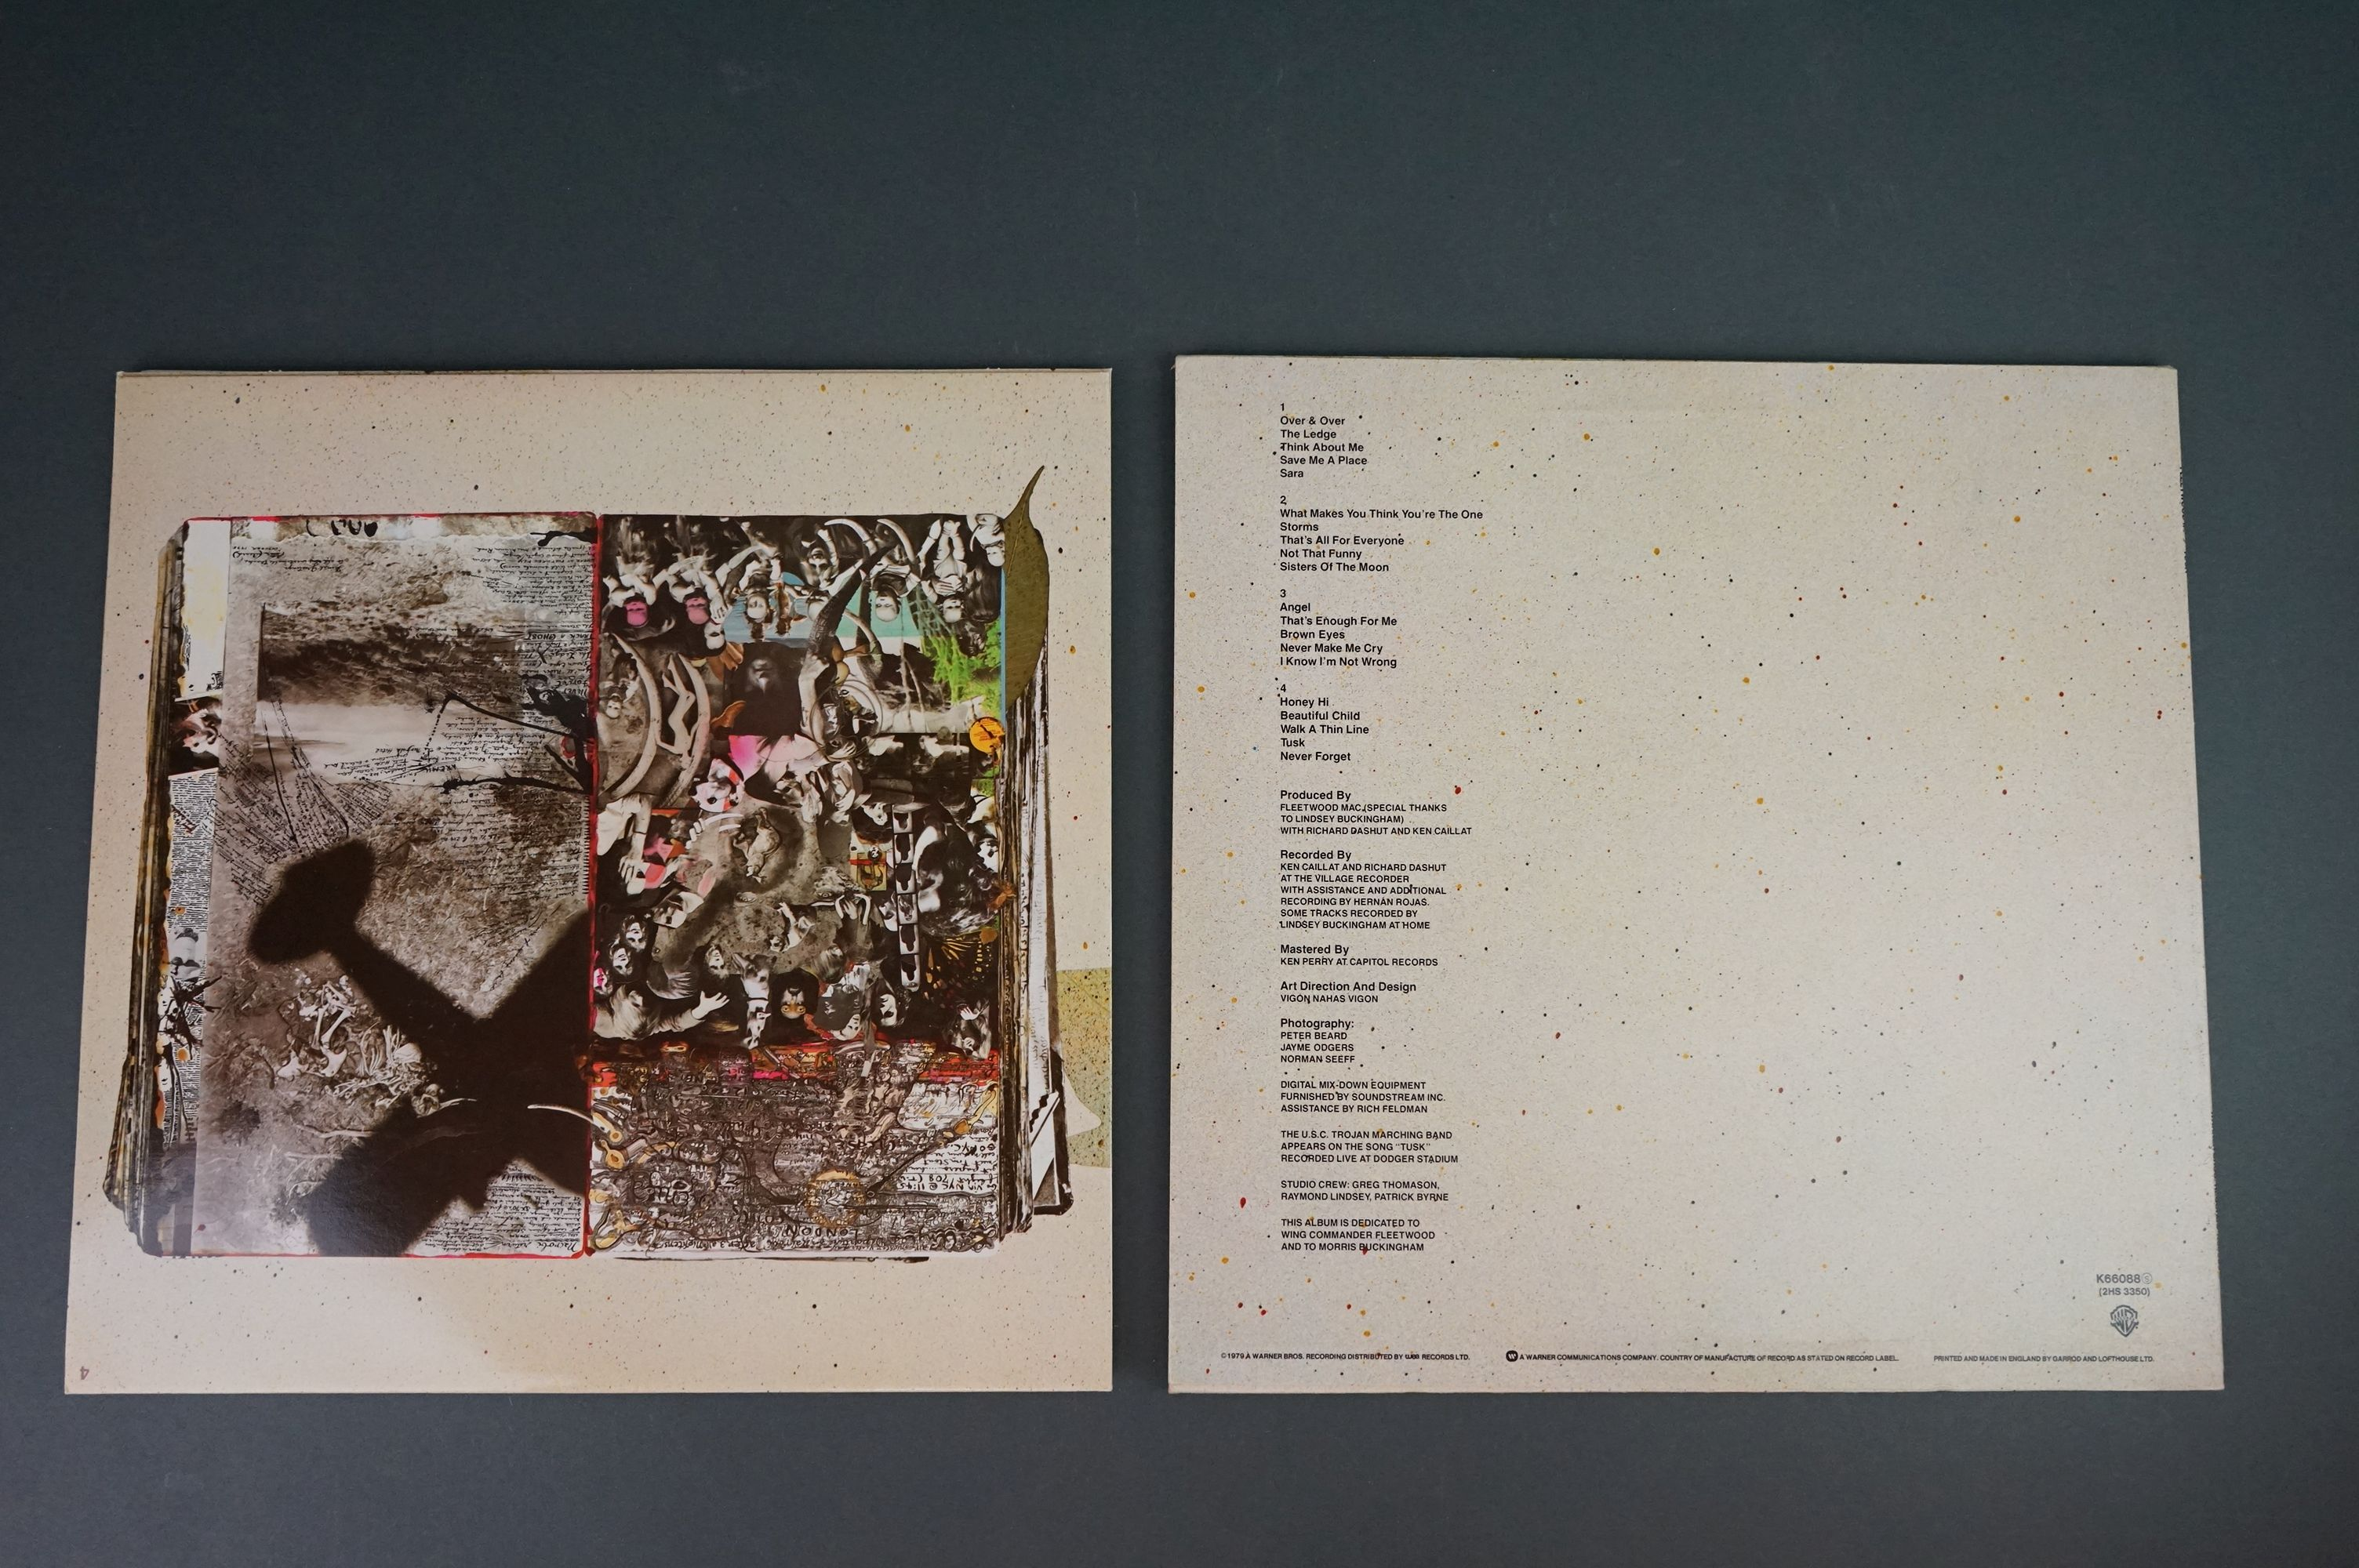 Vinyl - Two Fleetwood Mac LPs to include Tusk (K66088) and Rumours (K56344), sleeves and vinyl vg+ - Image 7 of 7